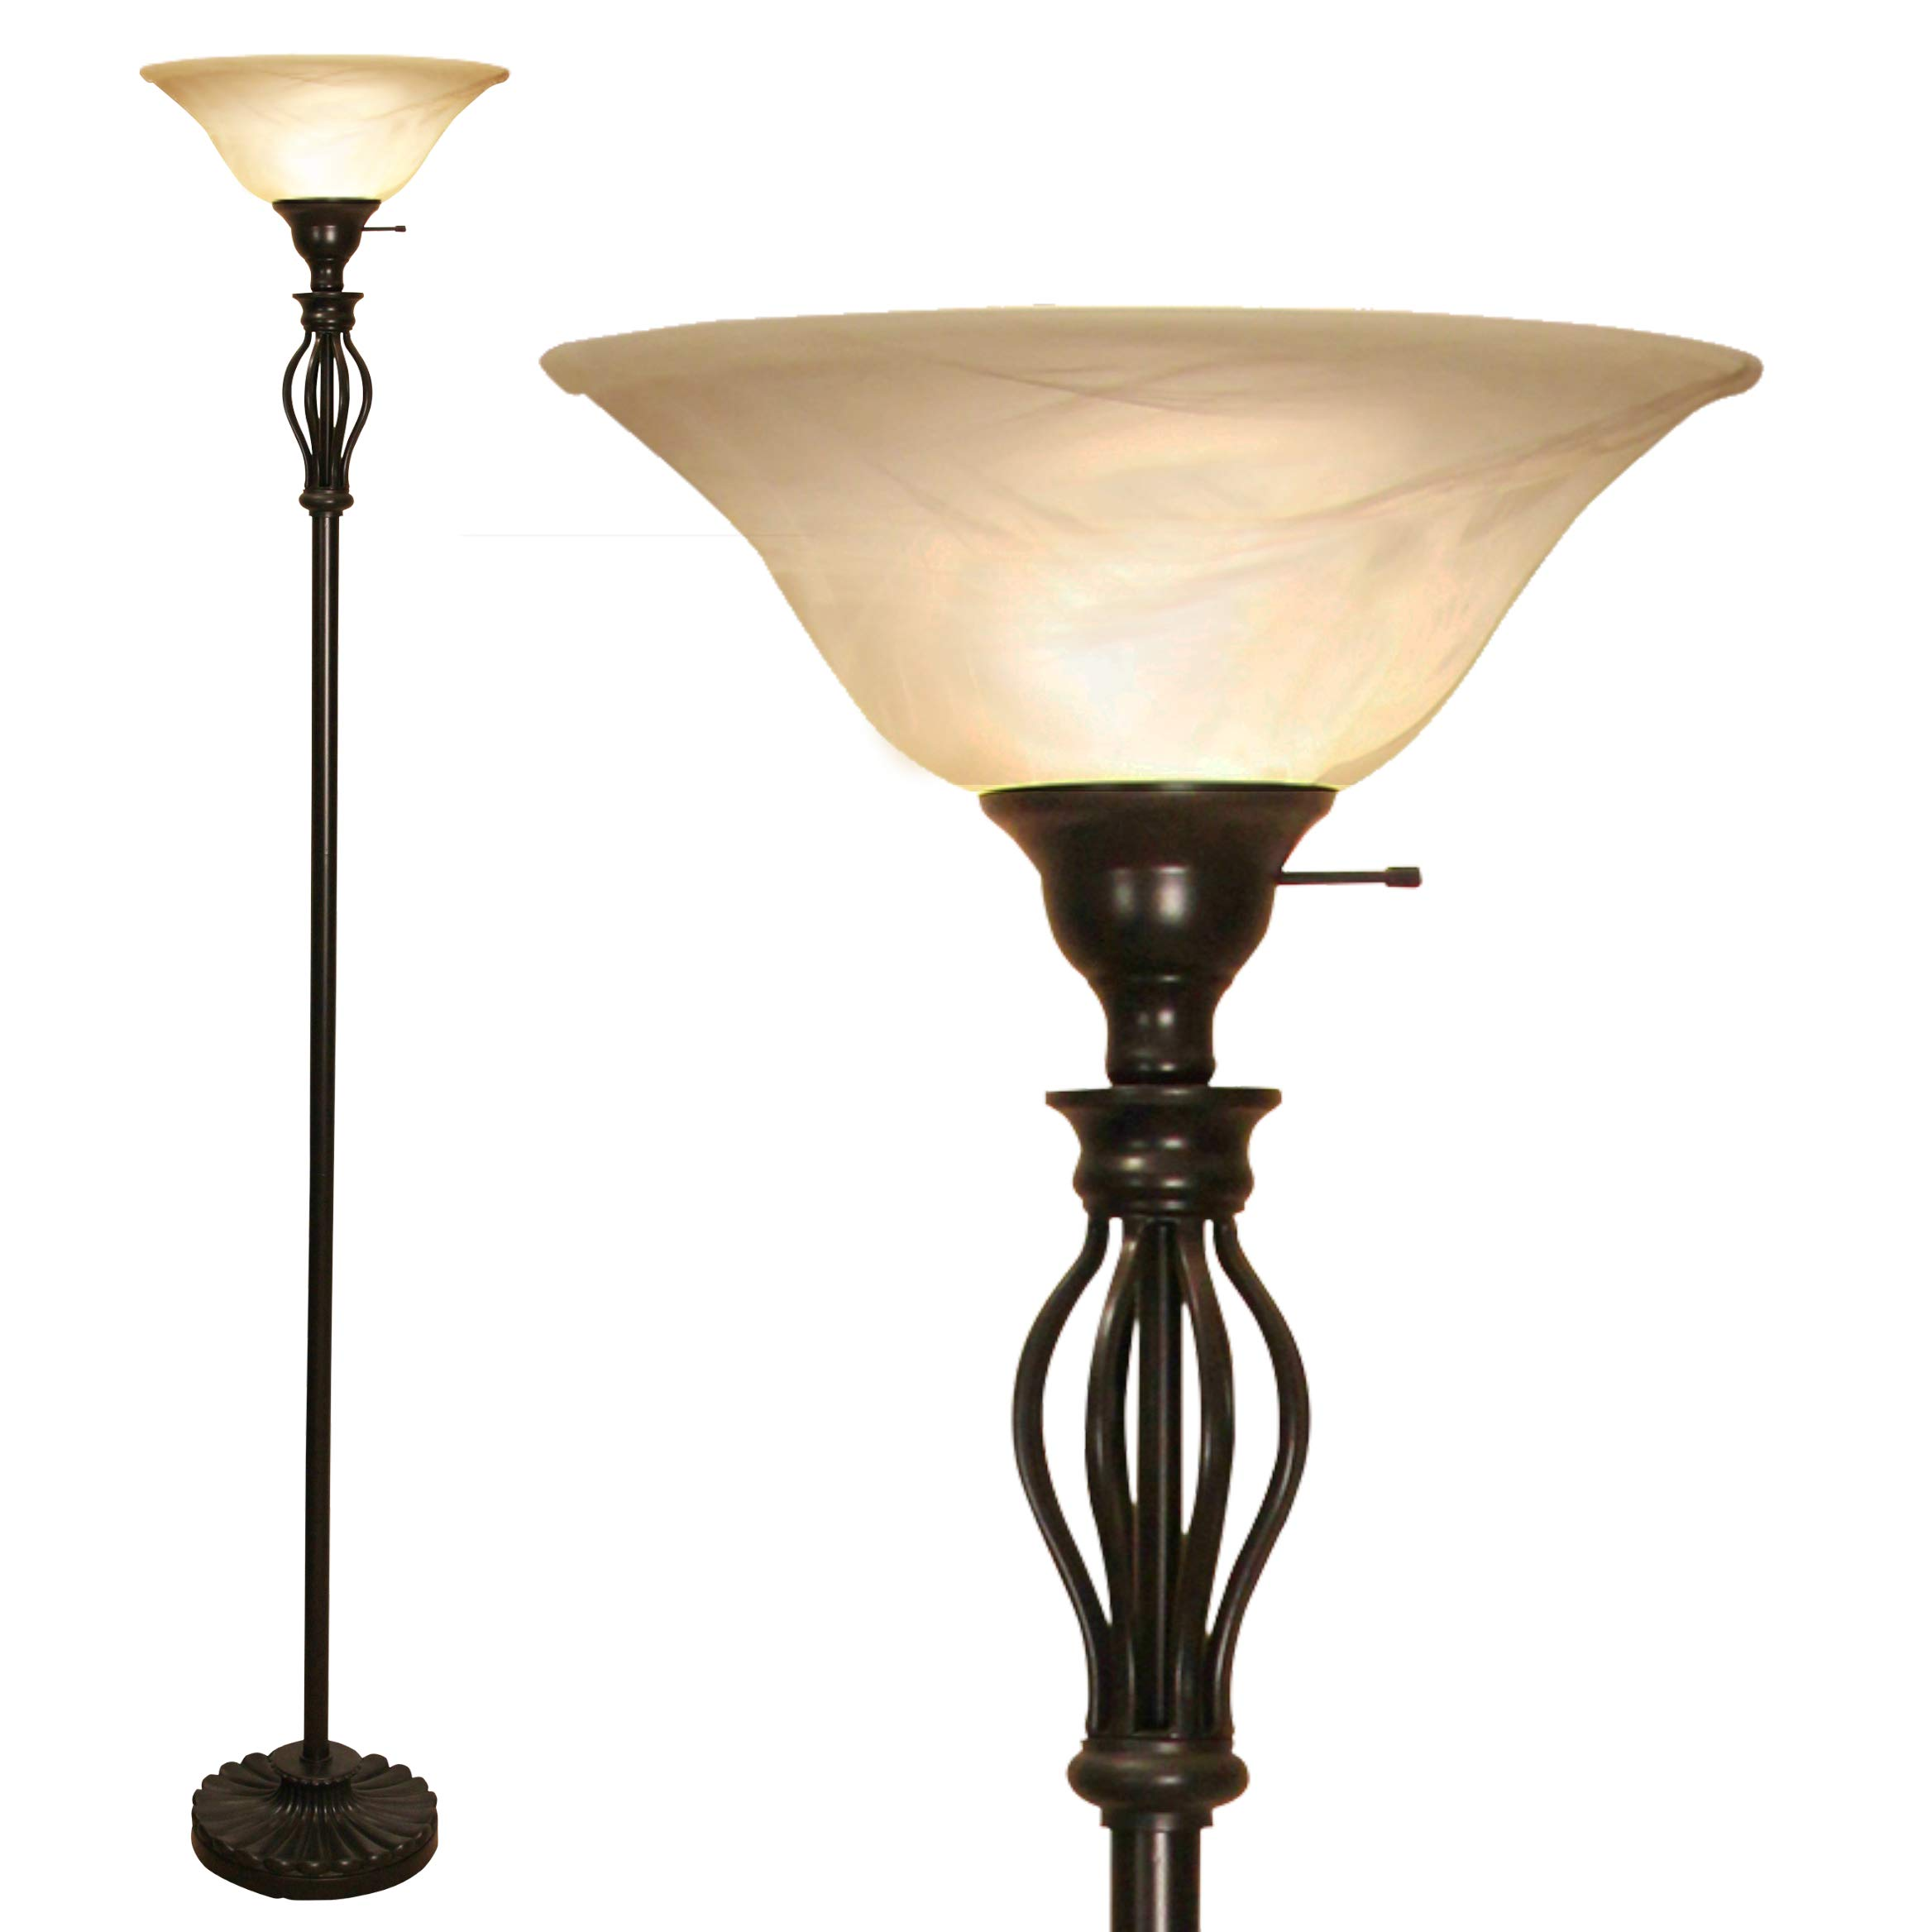 Floor Lamp by Light Accents - Floor Lamp for Living Room - Traditional Iron Scrollwork Standing Pole Light with Alabaster Glass Bowl Shade - Torchiere 70'' Tall- (Bronze) by LIGHTACCENTS